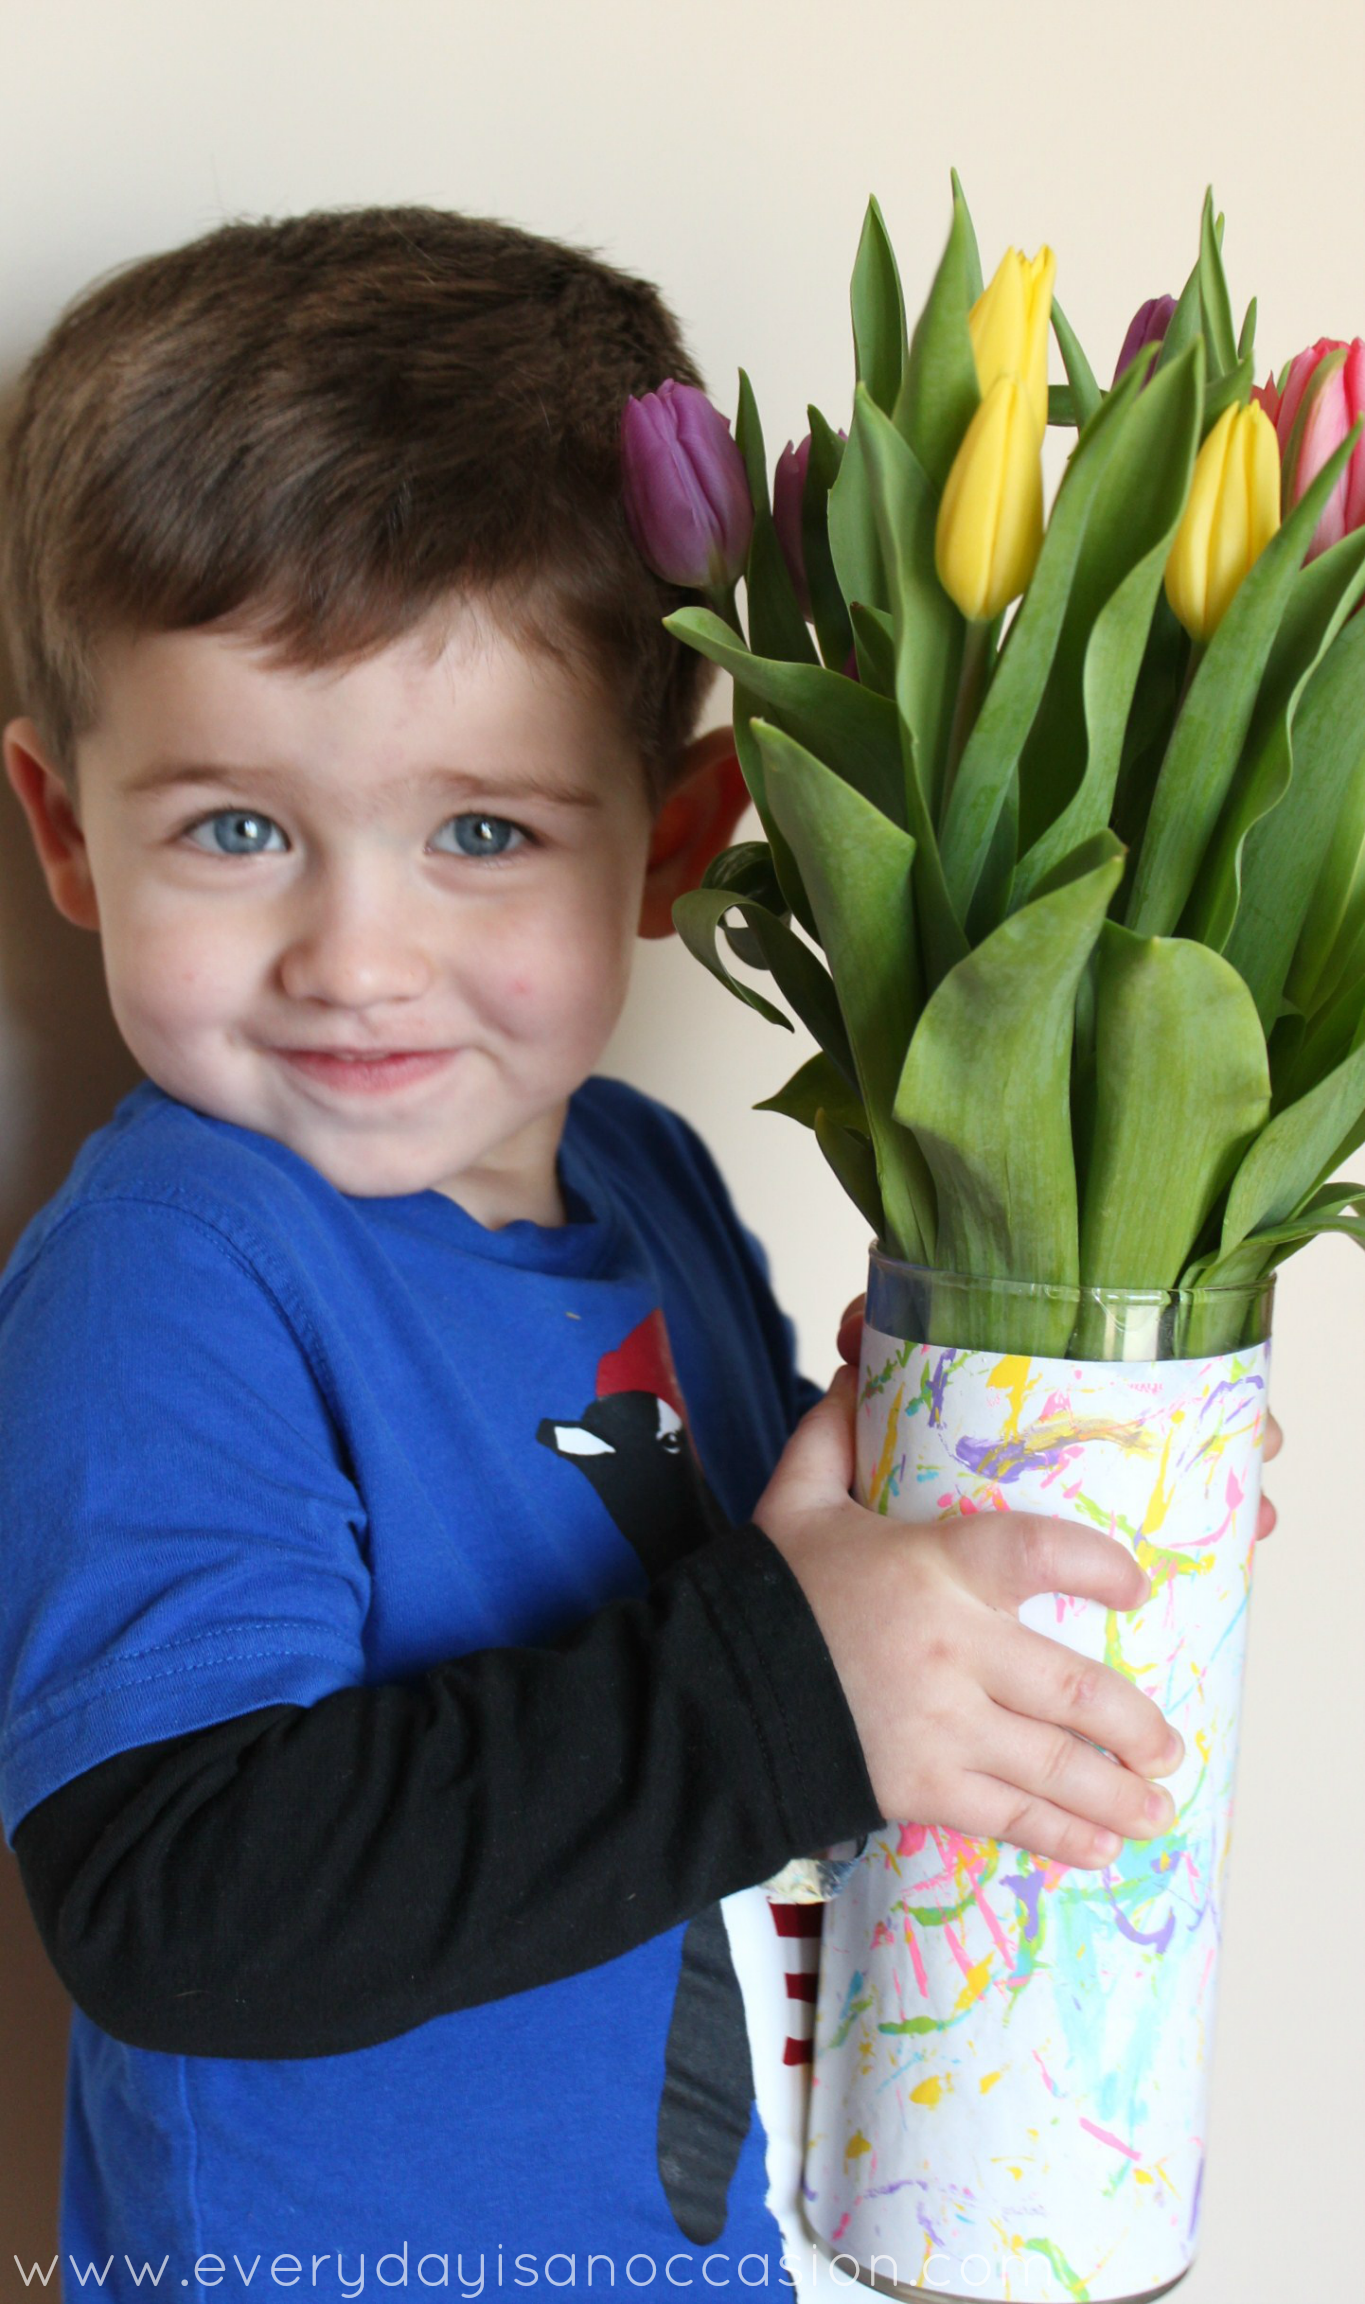 Your Child's Artwork on a Vase by Every Day is an Occasion